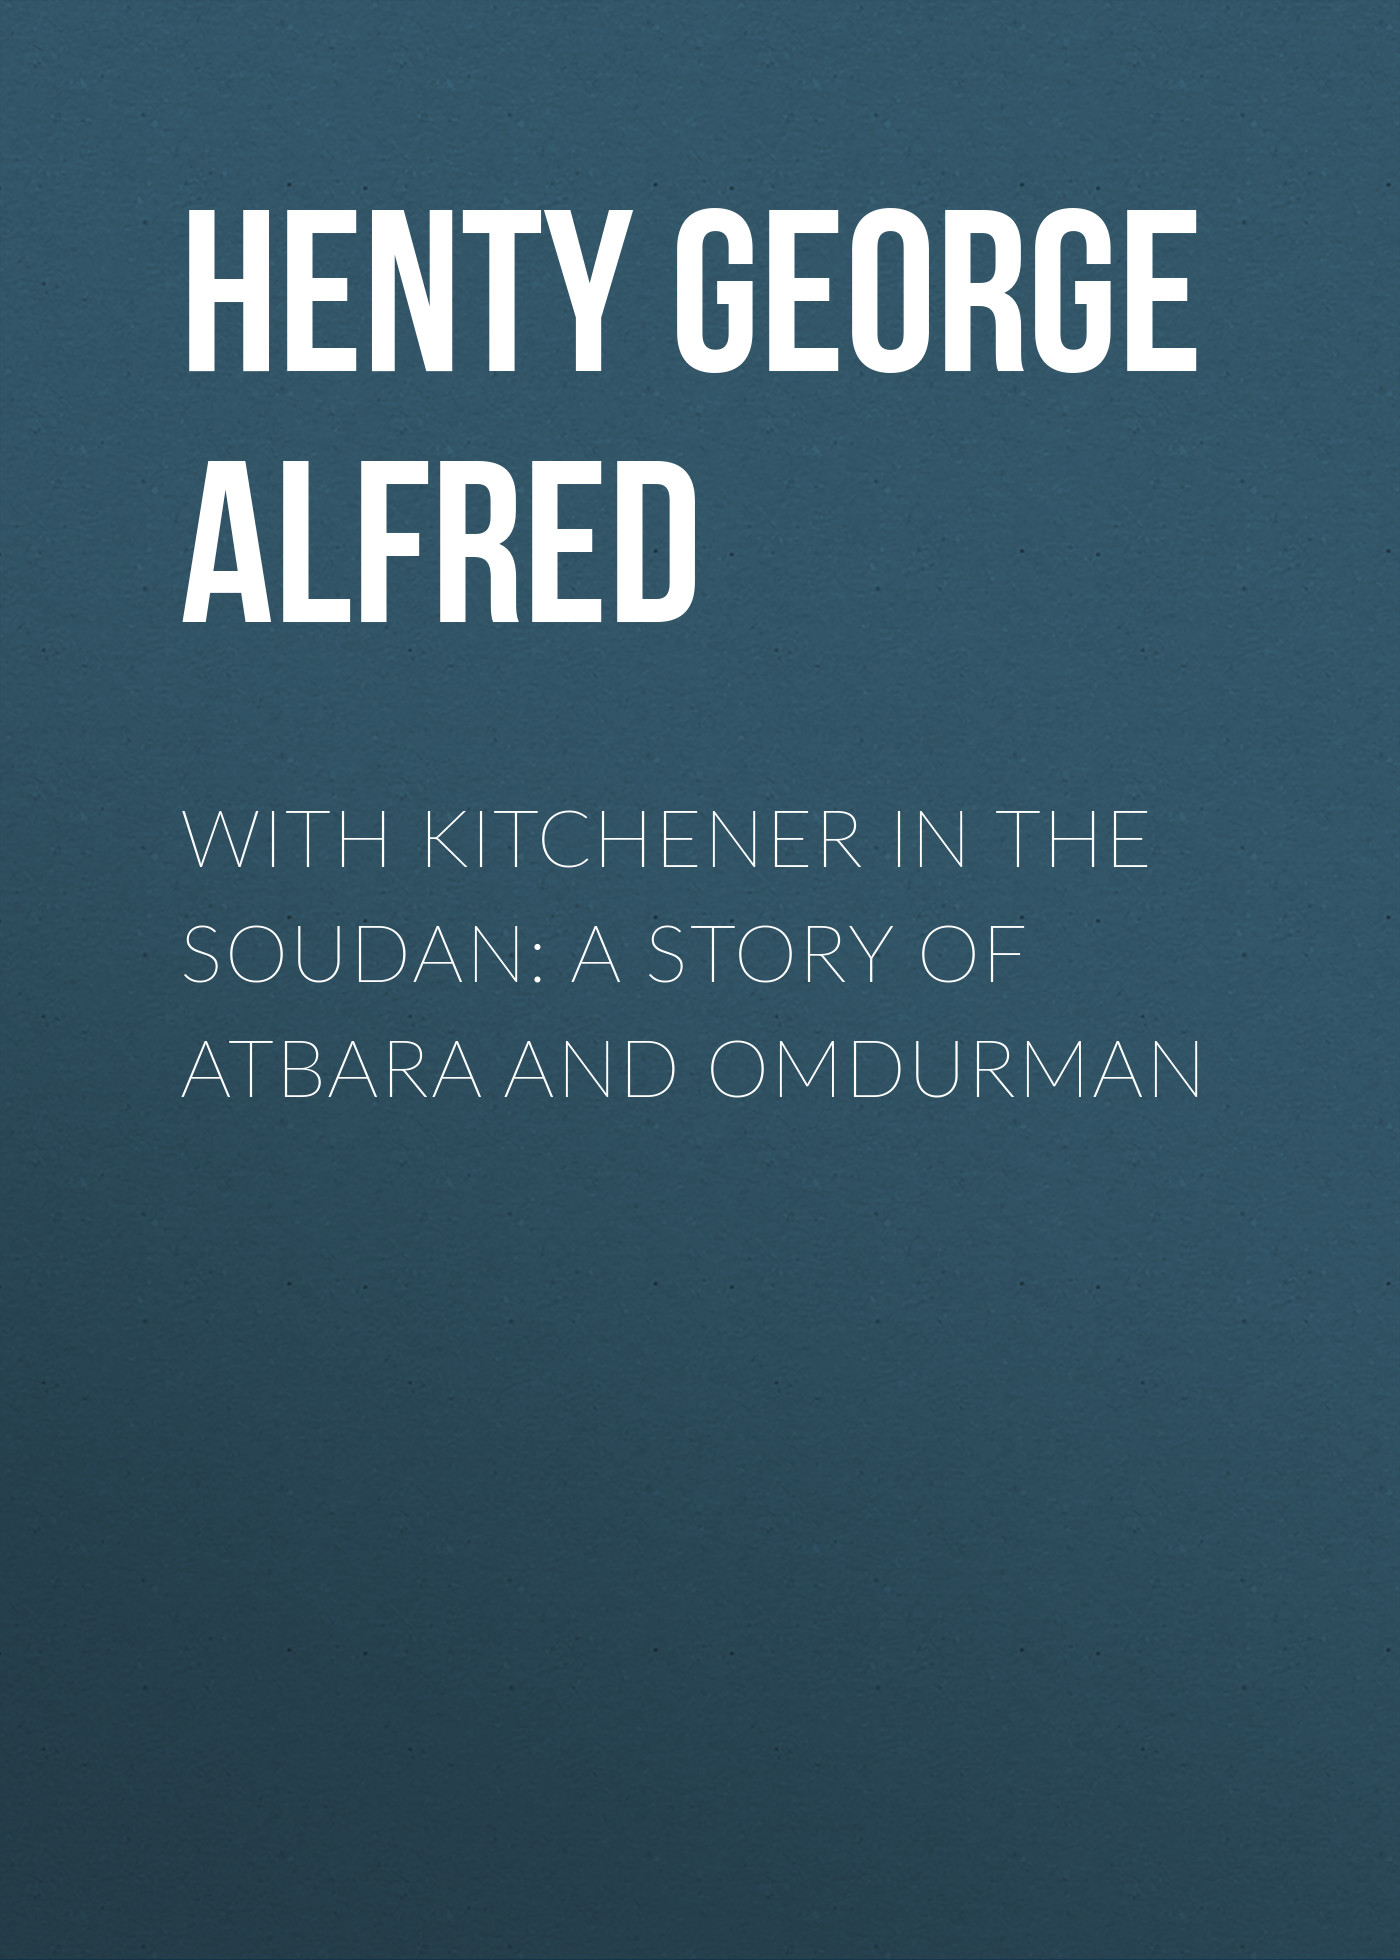 Henty George Alfred With Kitchener in the Soudan: A Story of Atbara and Omdurman